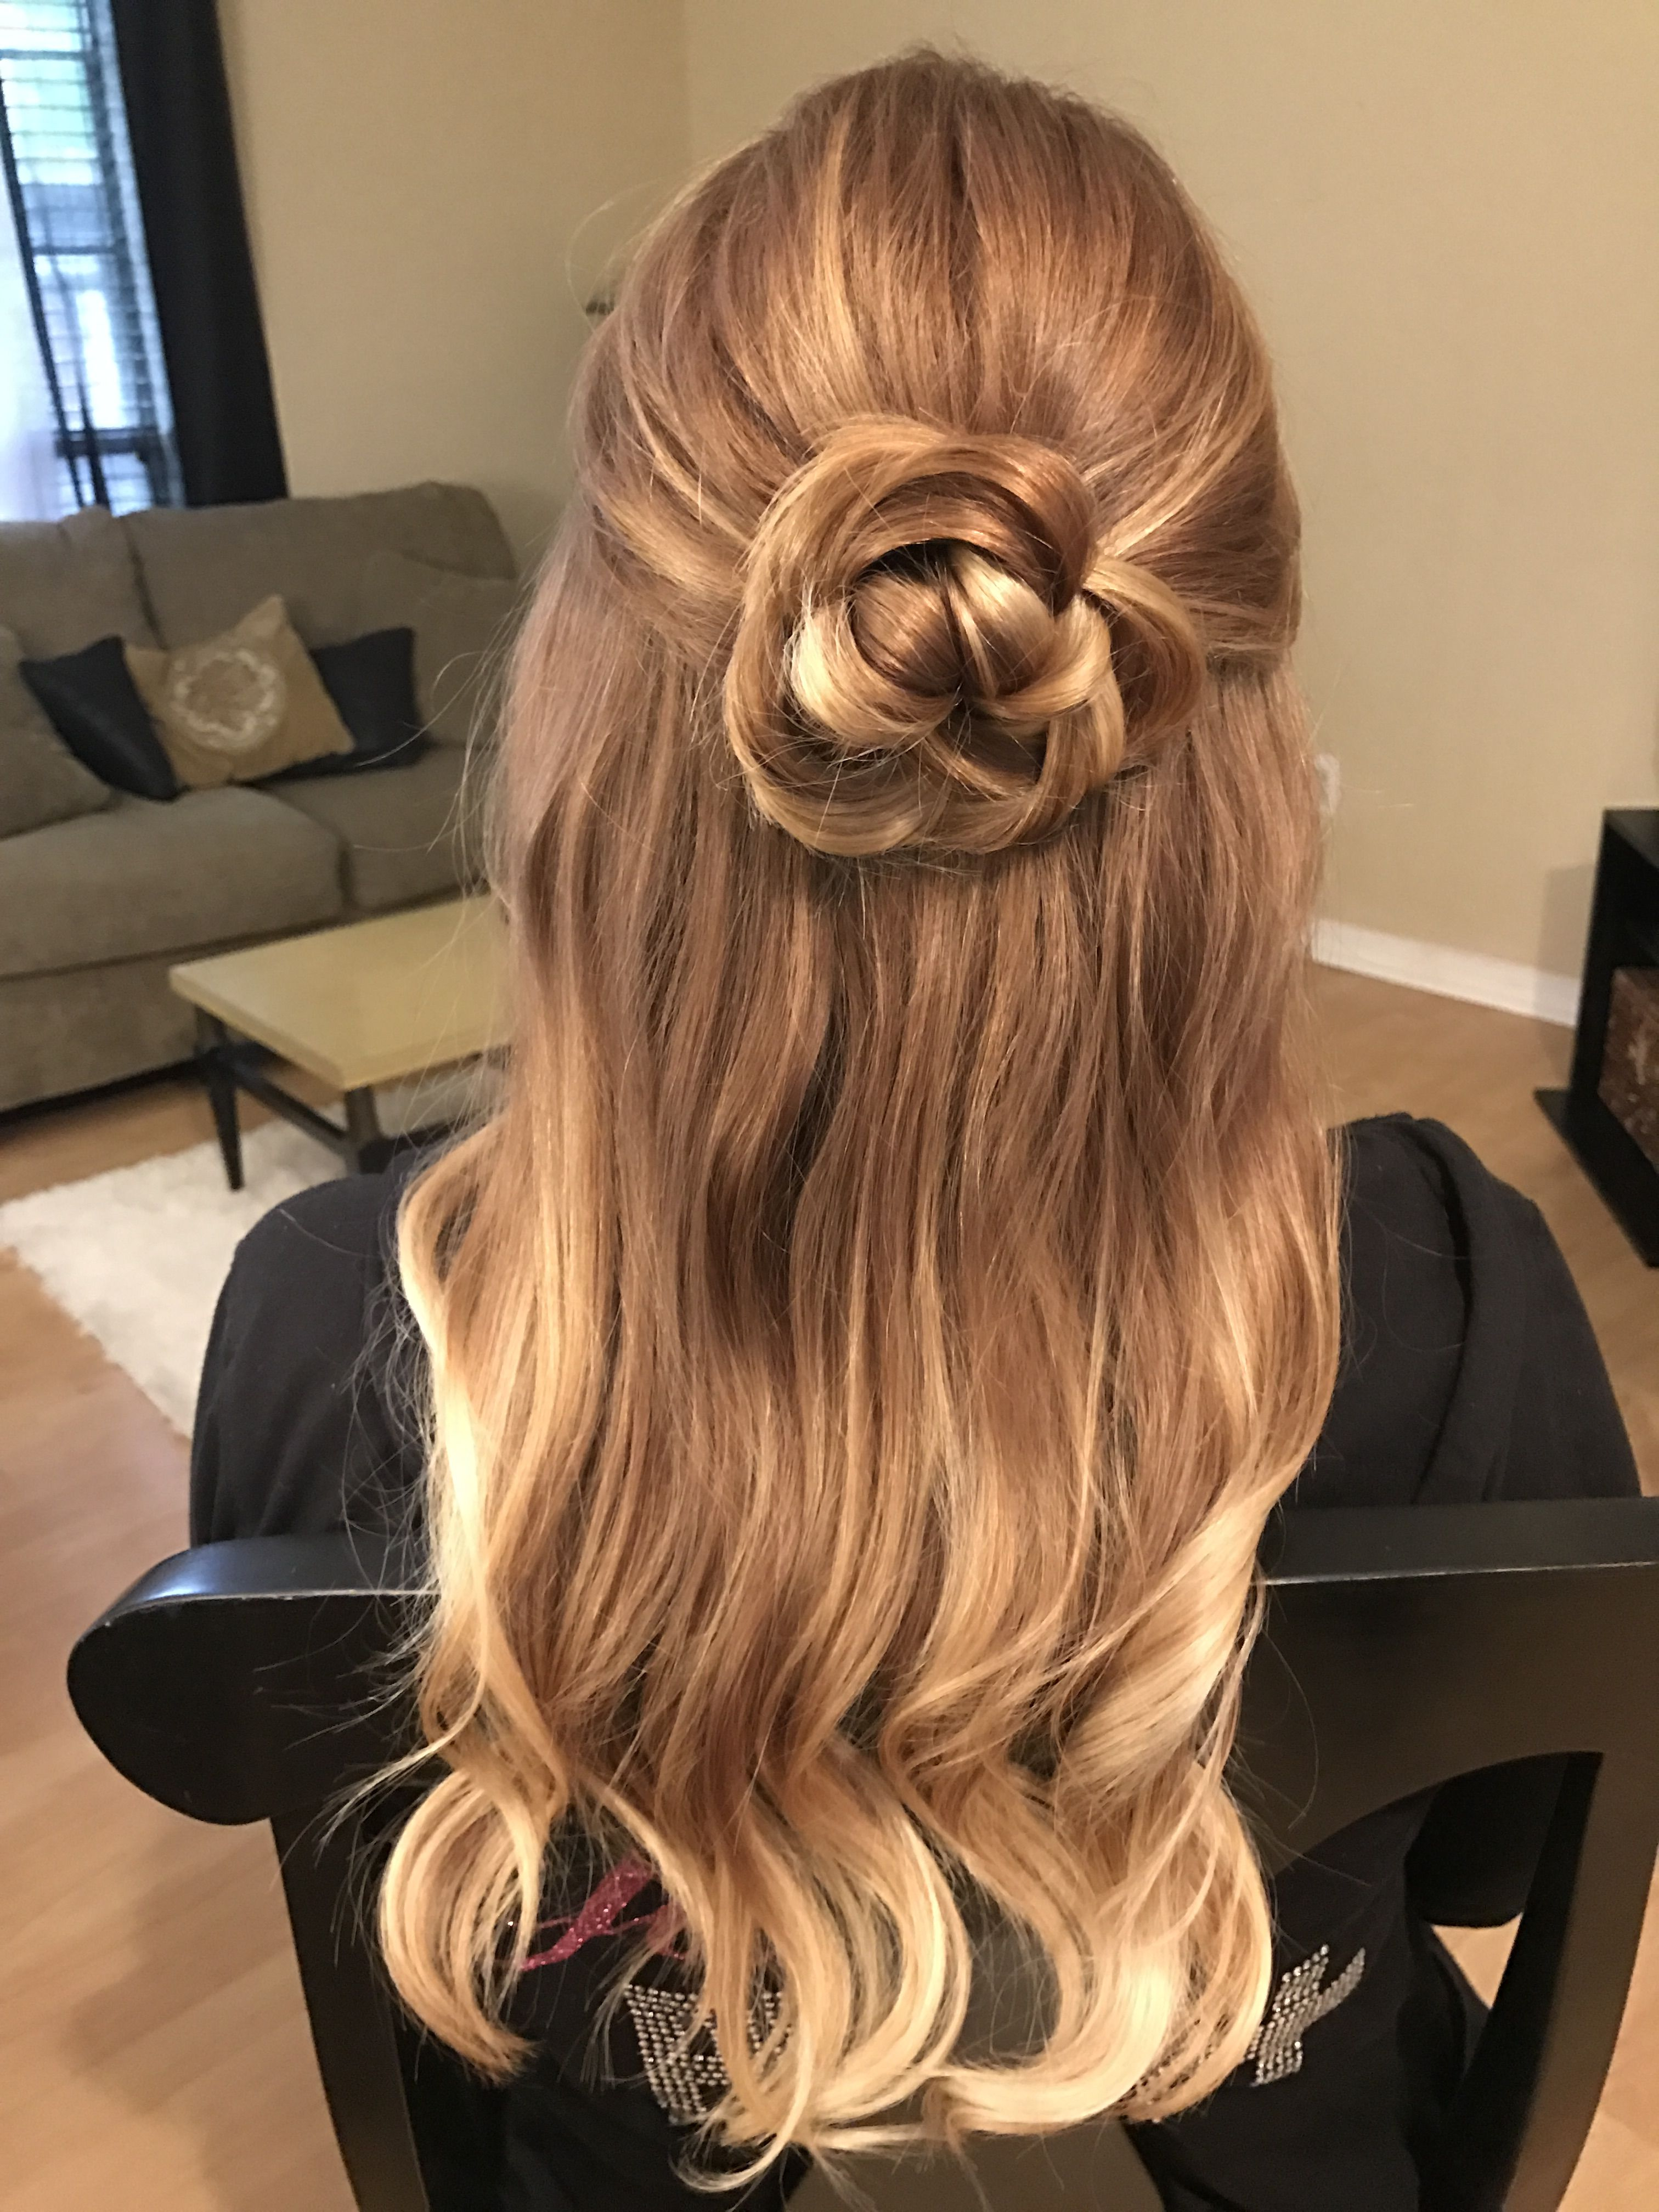 rose flower hair updo